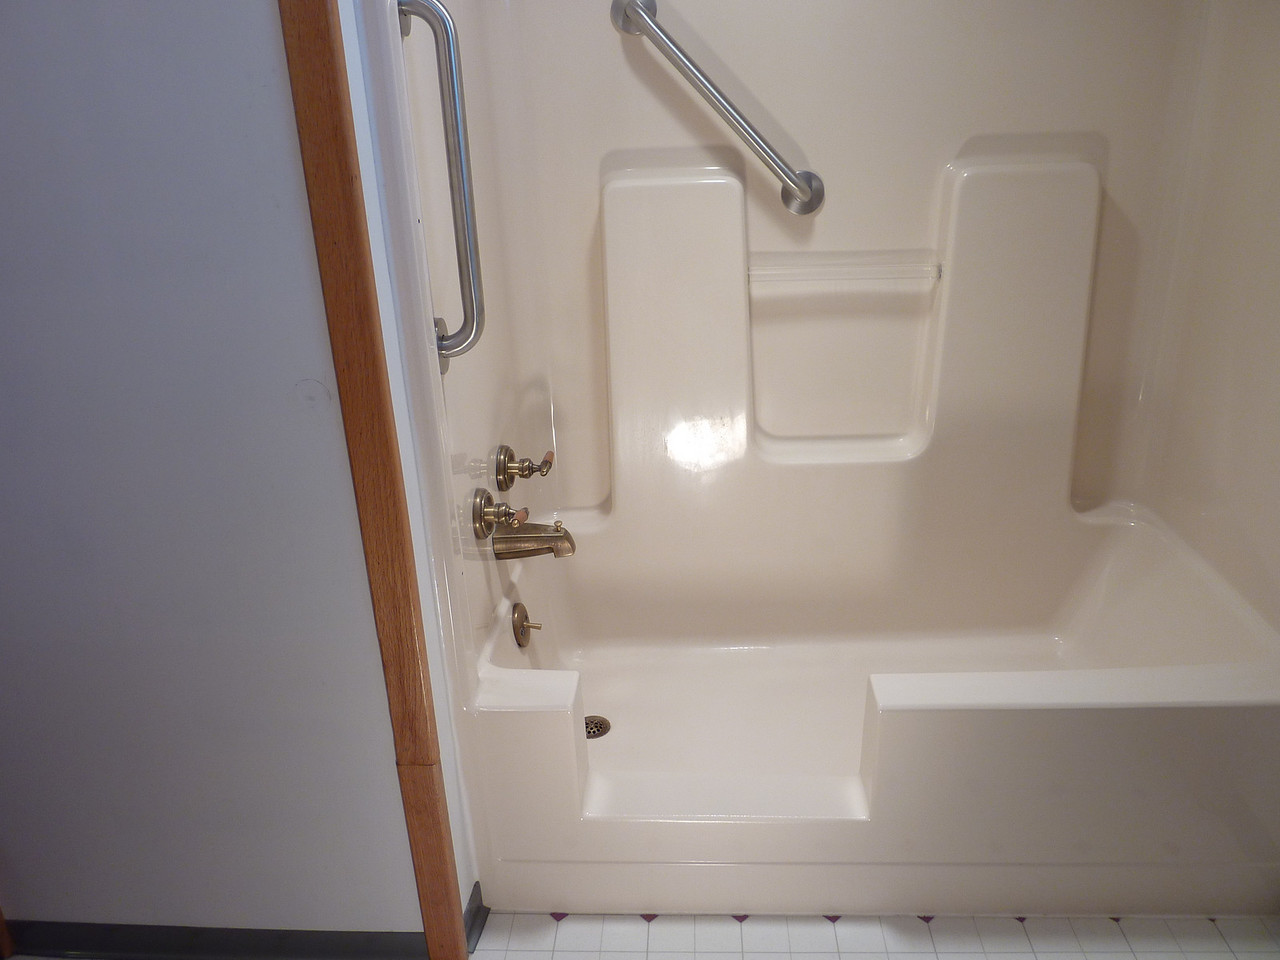 Job complete - Finished matched ... I put on the 2 grab bars to aid stability for the customer.